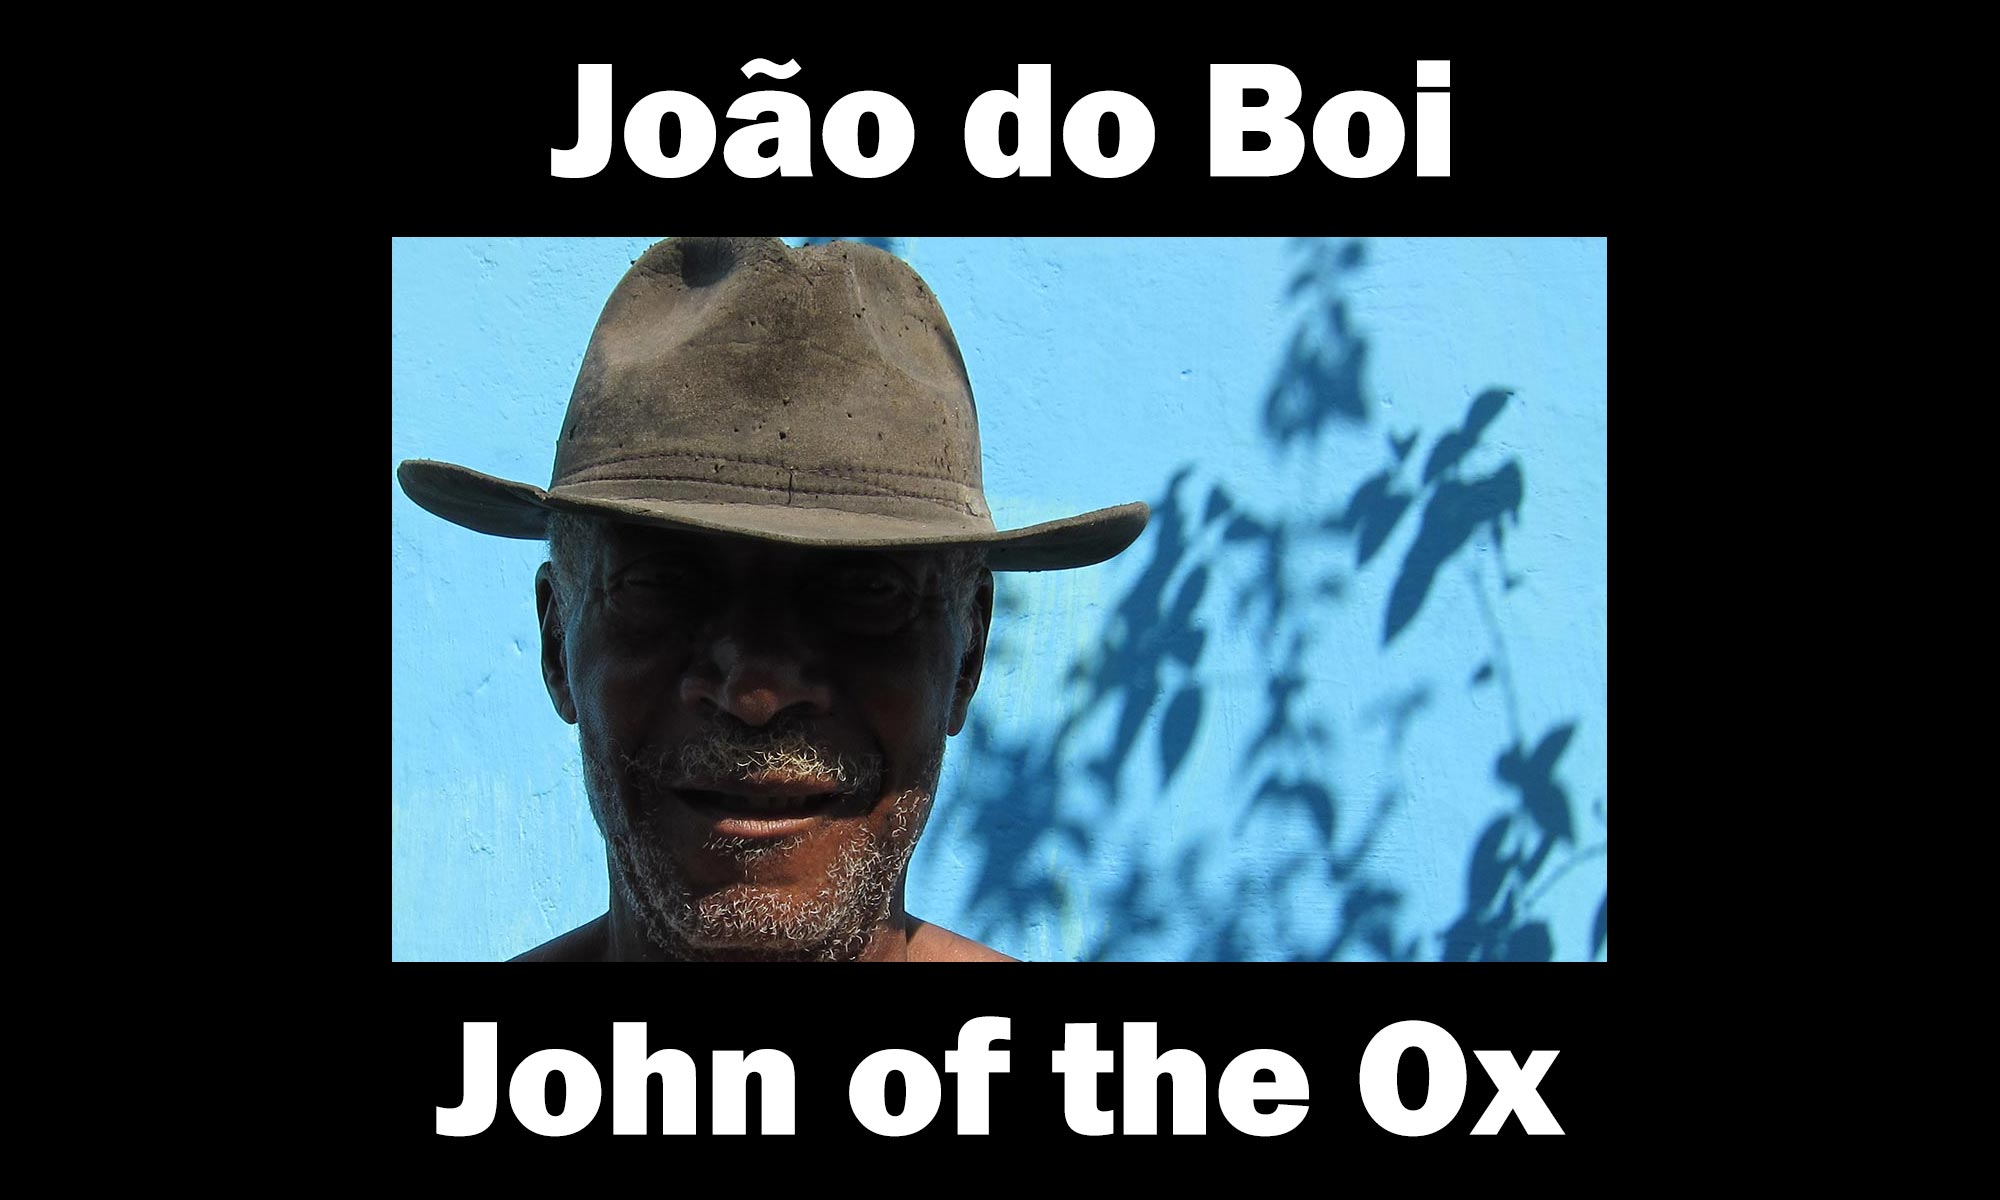 João do Boi - John of the Ox